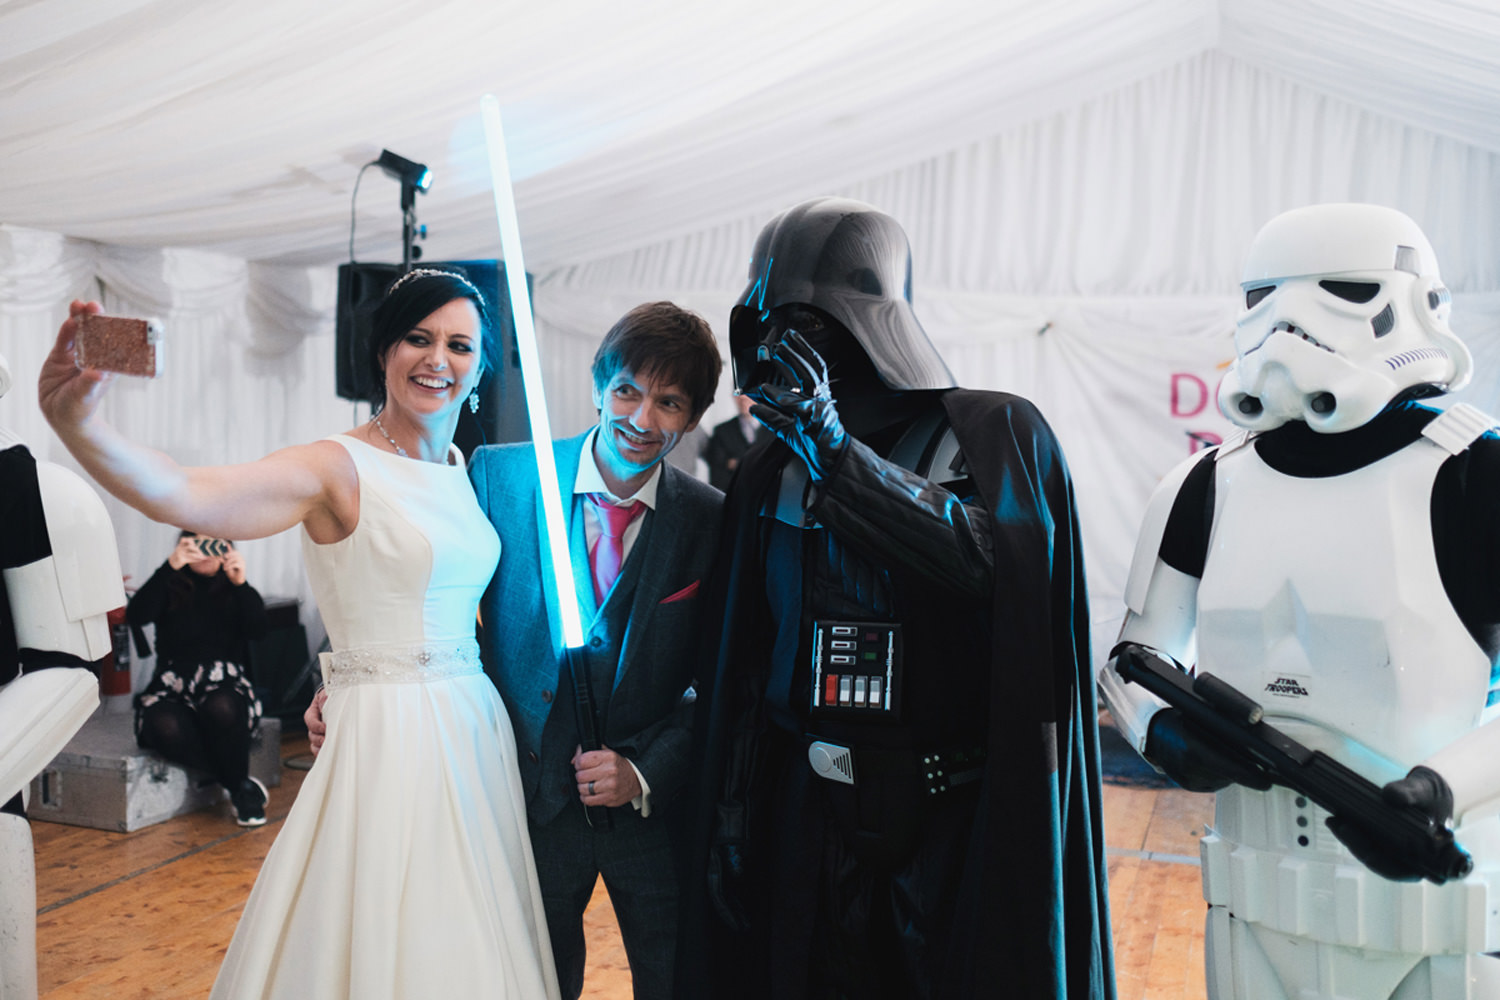 bride and groom with darth vader and storm troopers